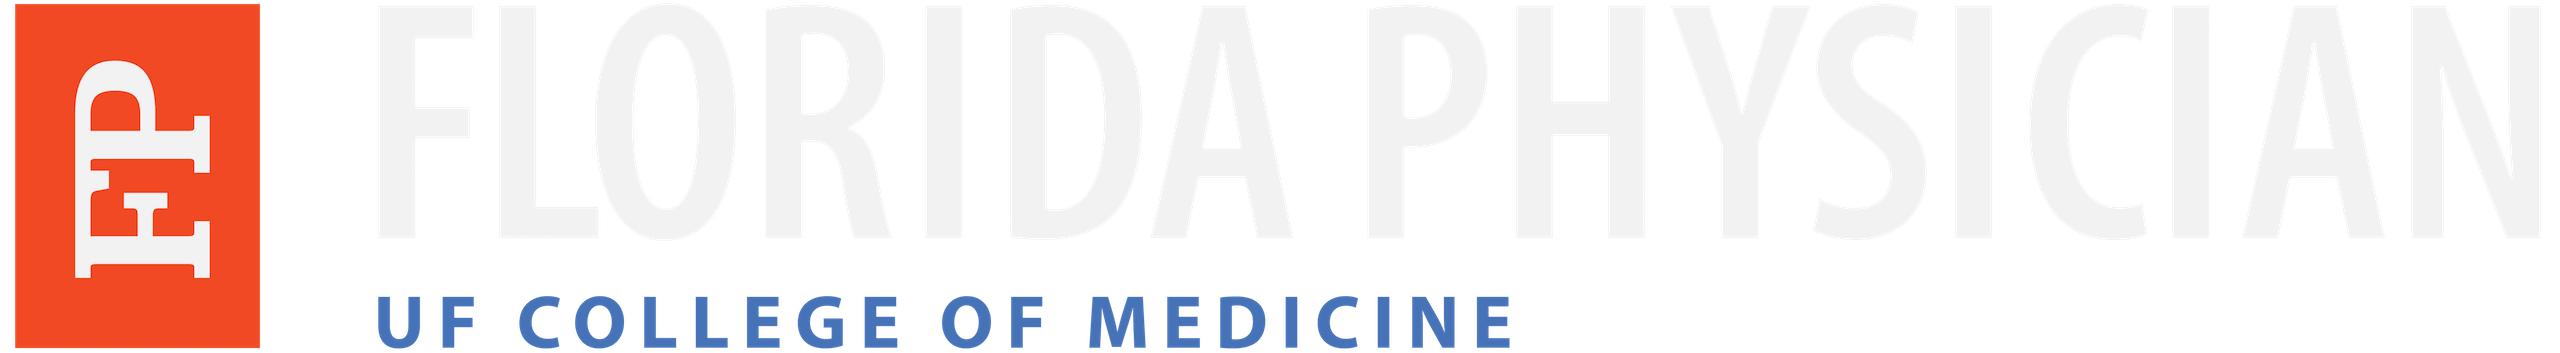 Florida Physician Logo